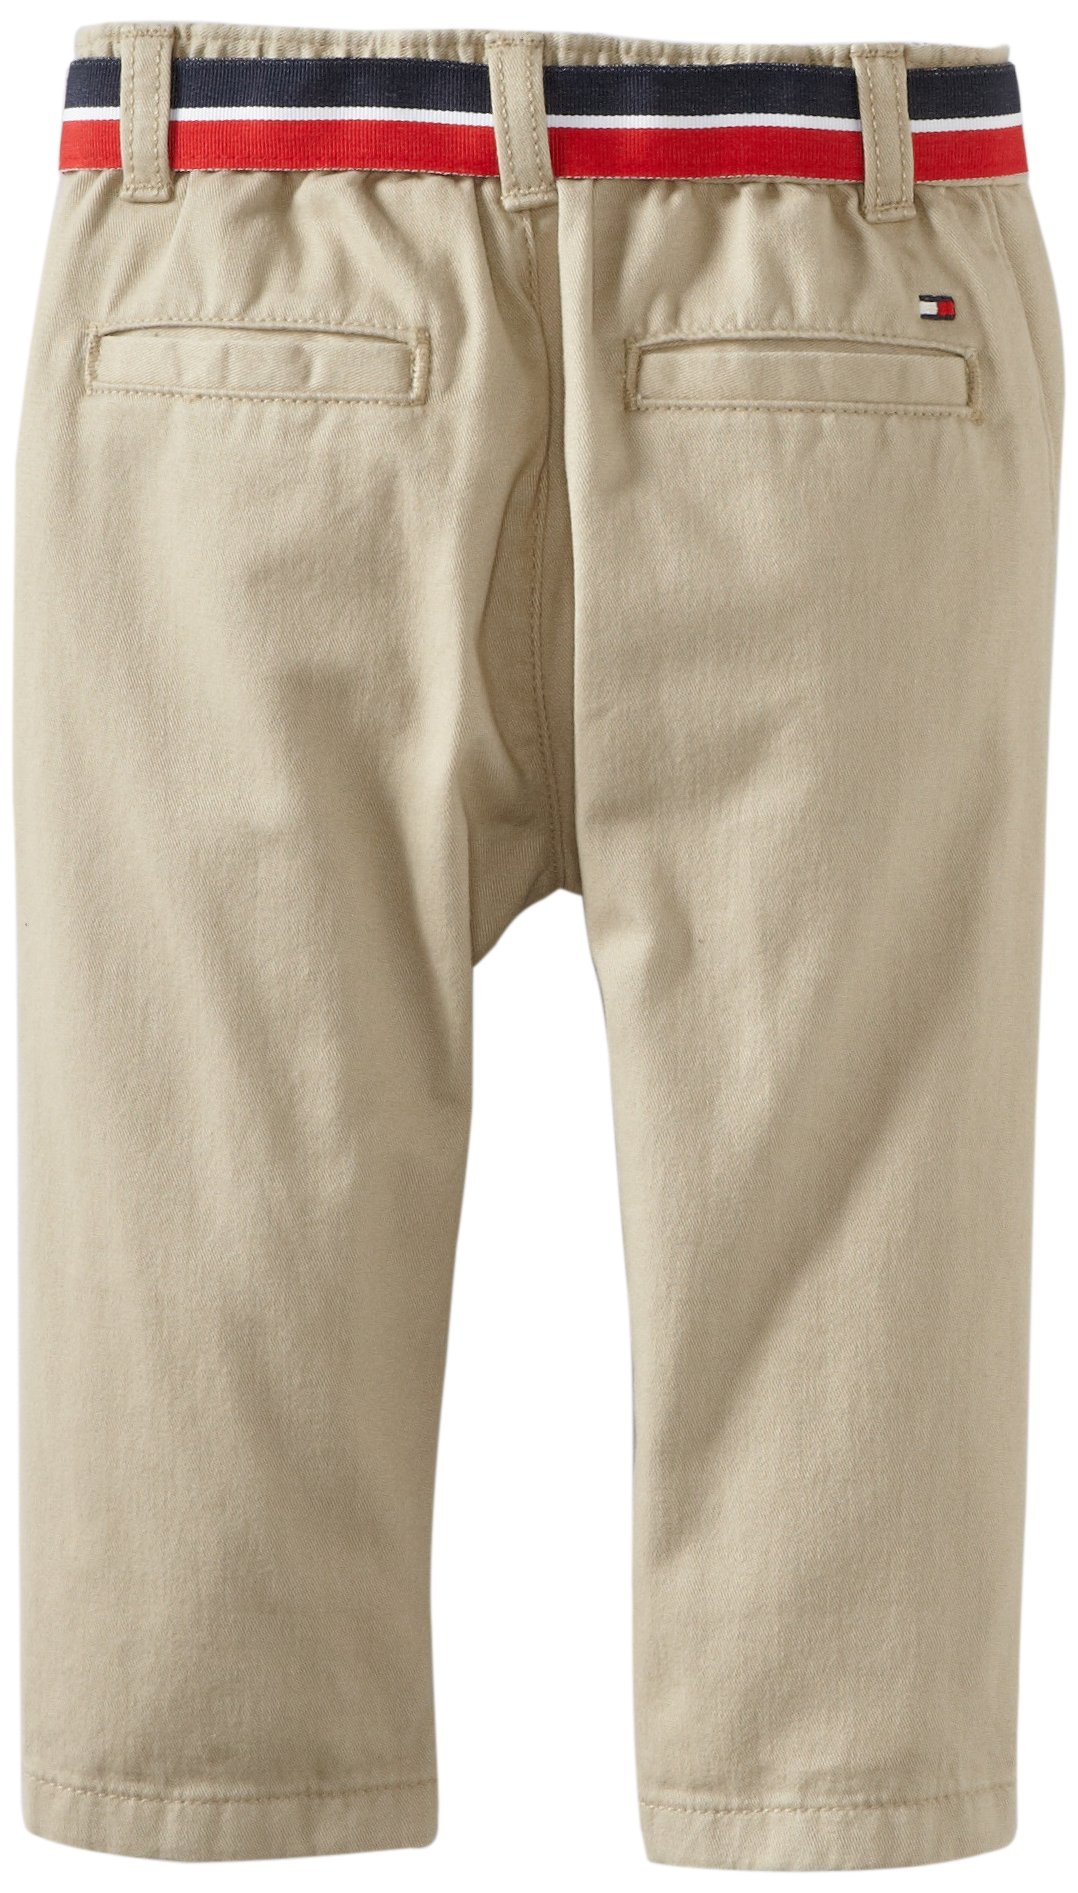 Tommy Hilfiger Baby Boys' Charlie Flat Front Pant, Travel Khaki, 24 Months by Tommy Hilfiger (Image #2)